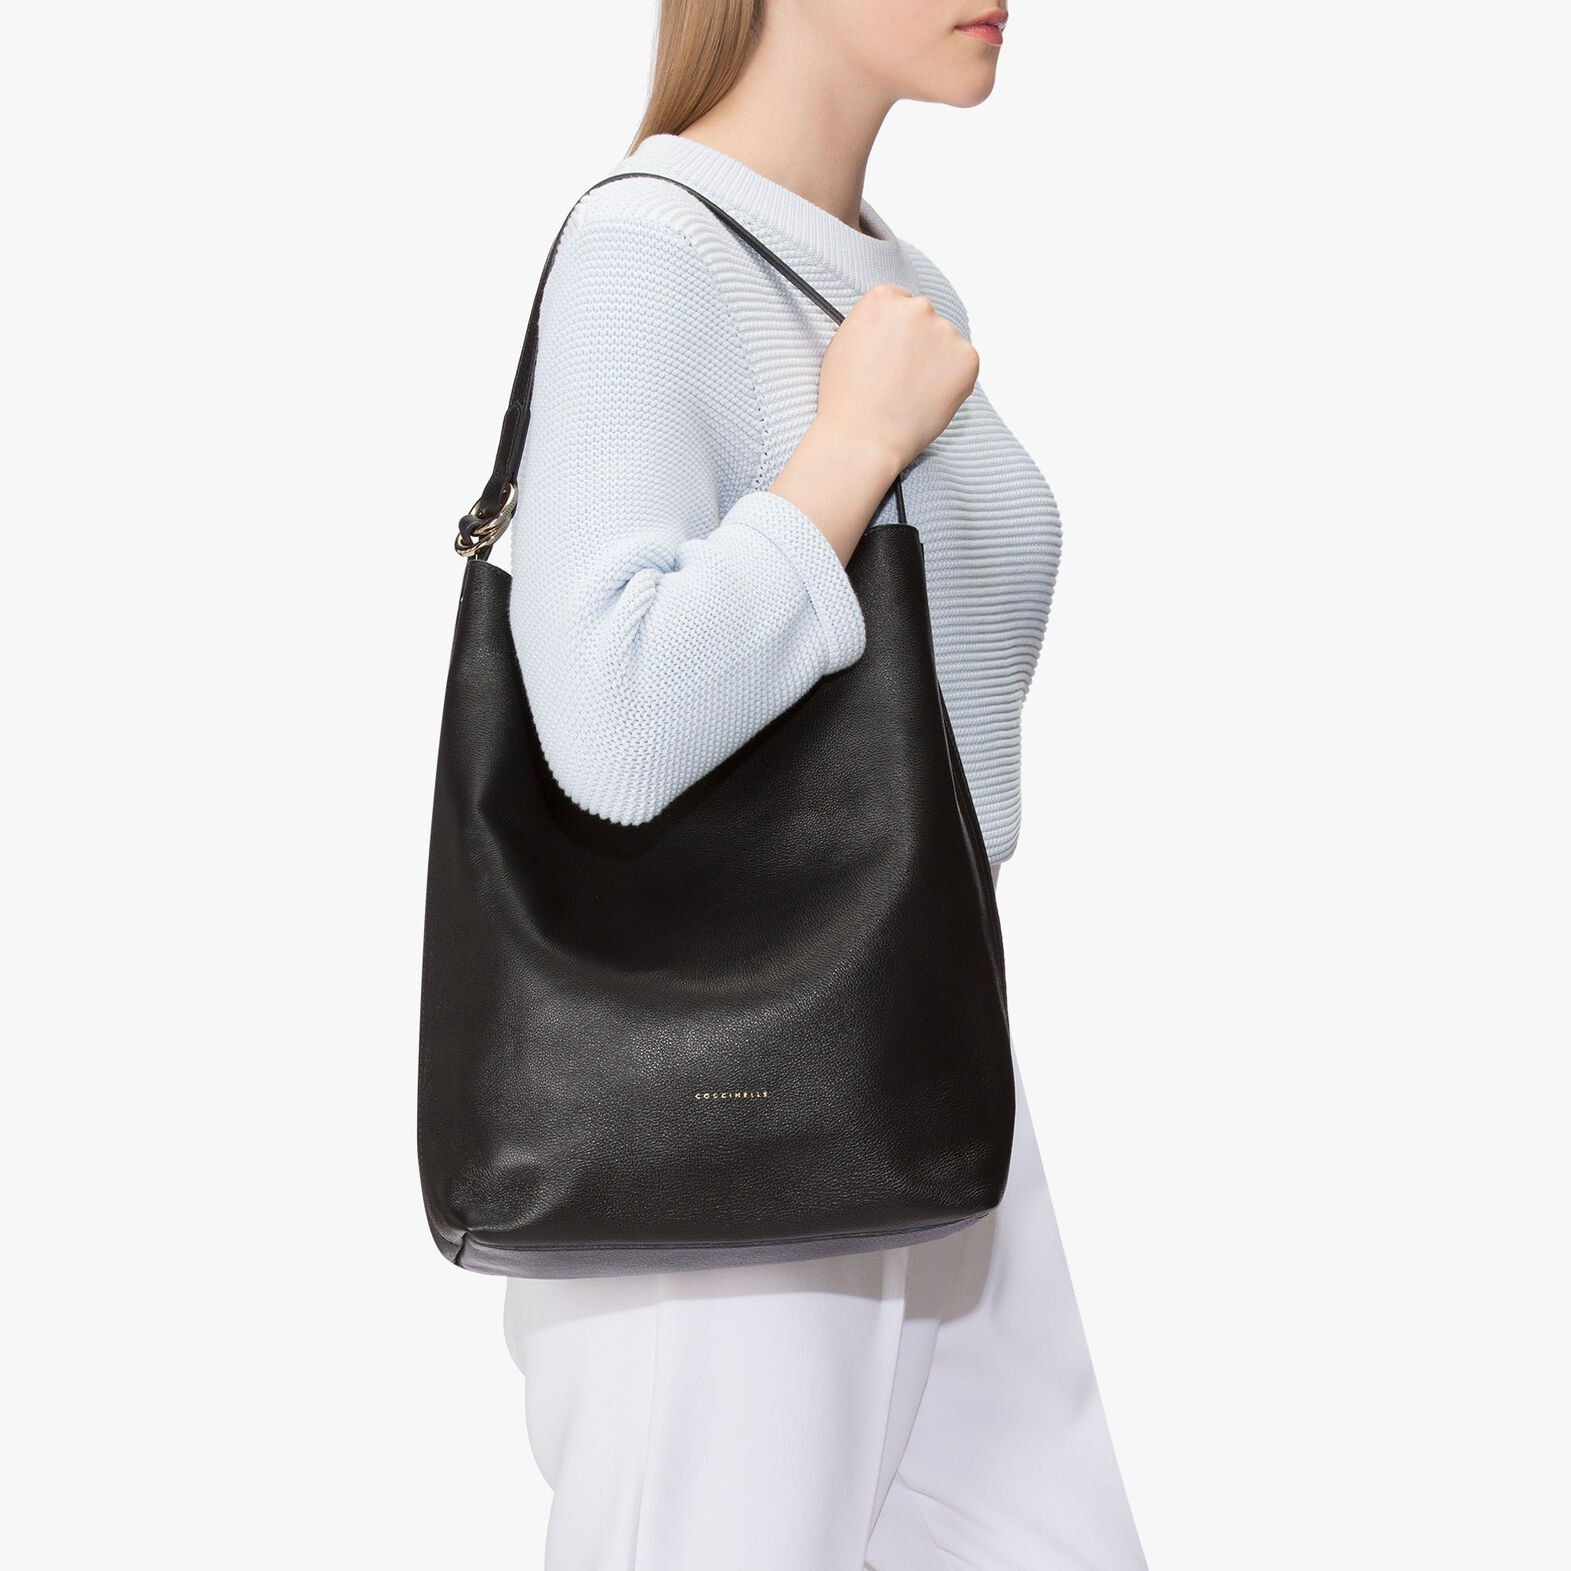 Davon leather hobo bag